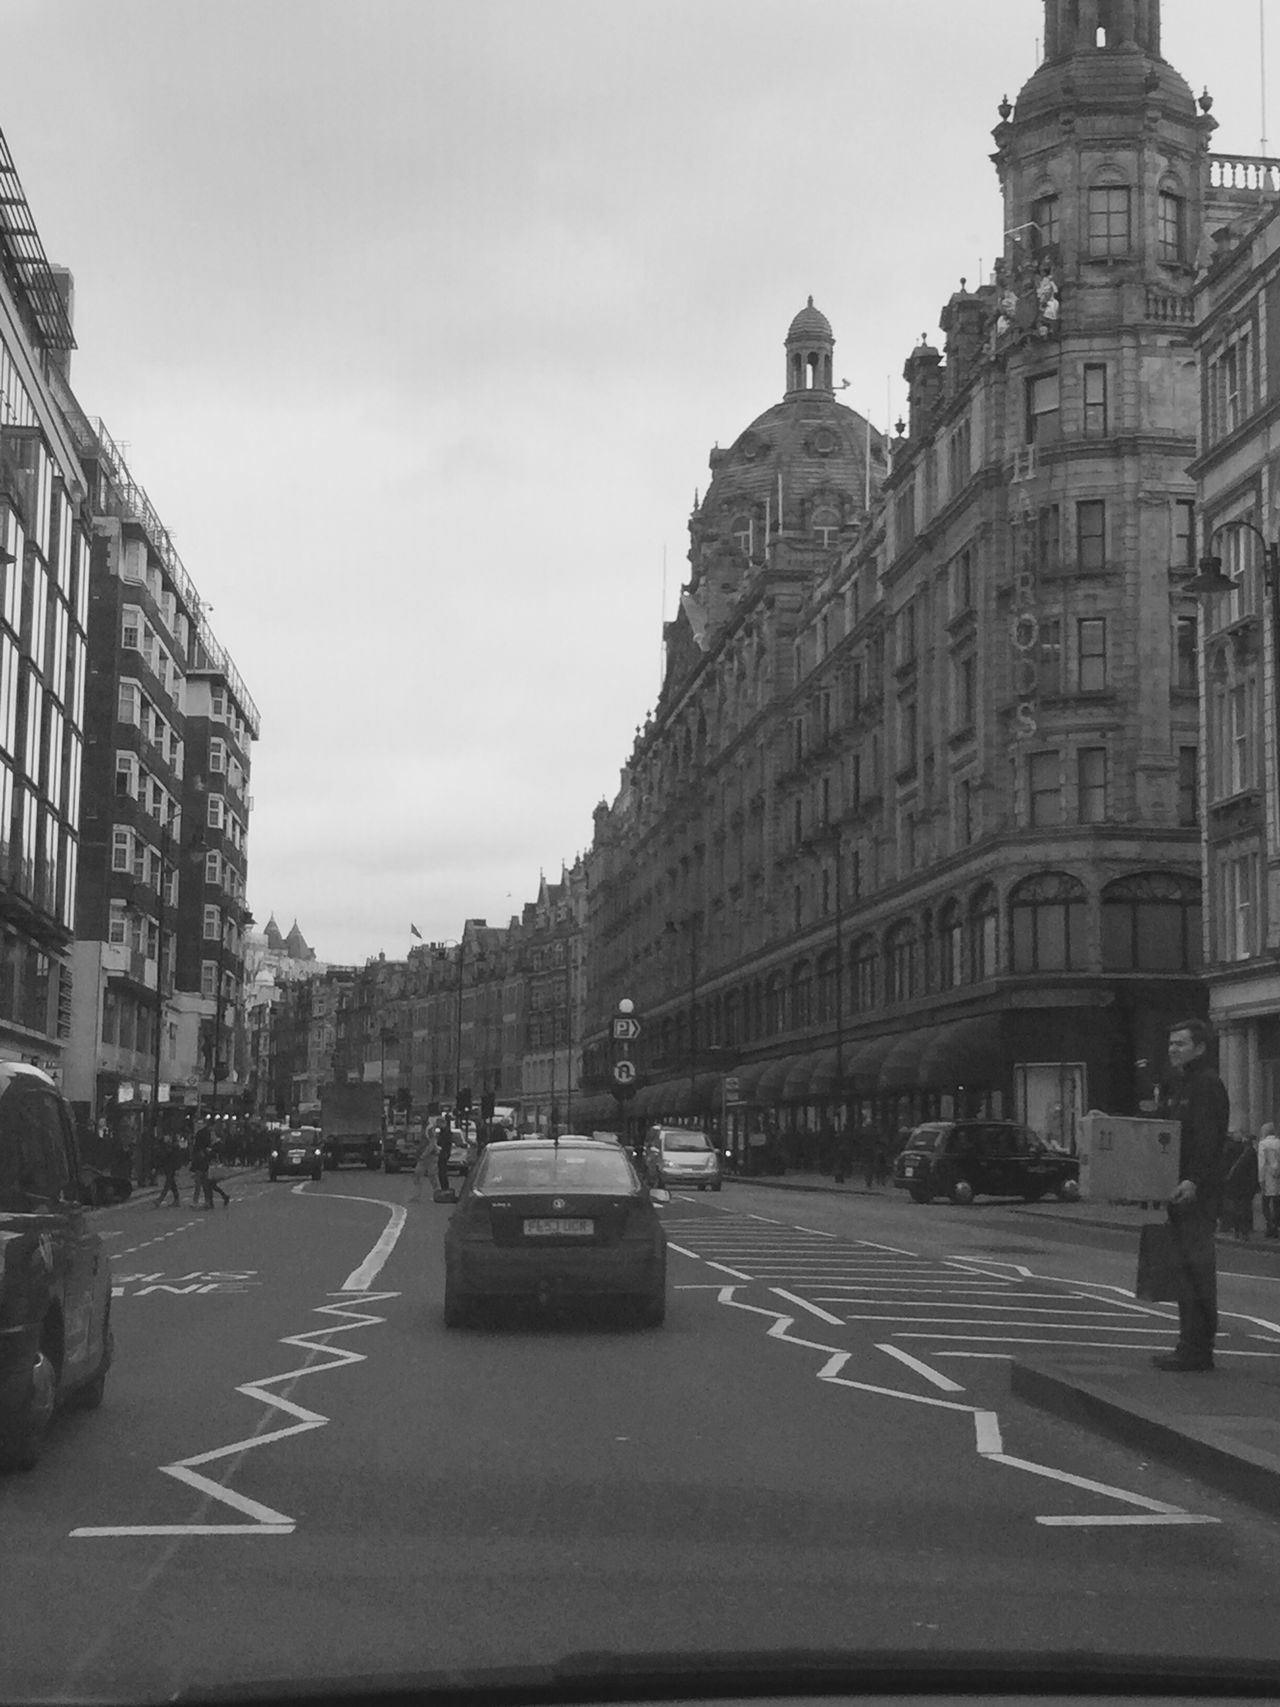 Low Section Outdoors Day Real People Building Exterior Street City Flagship Store Architecture Built Structure Road City Street Transportation Car The City Light Blackandwhite Photography